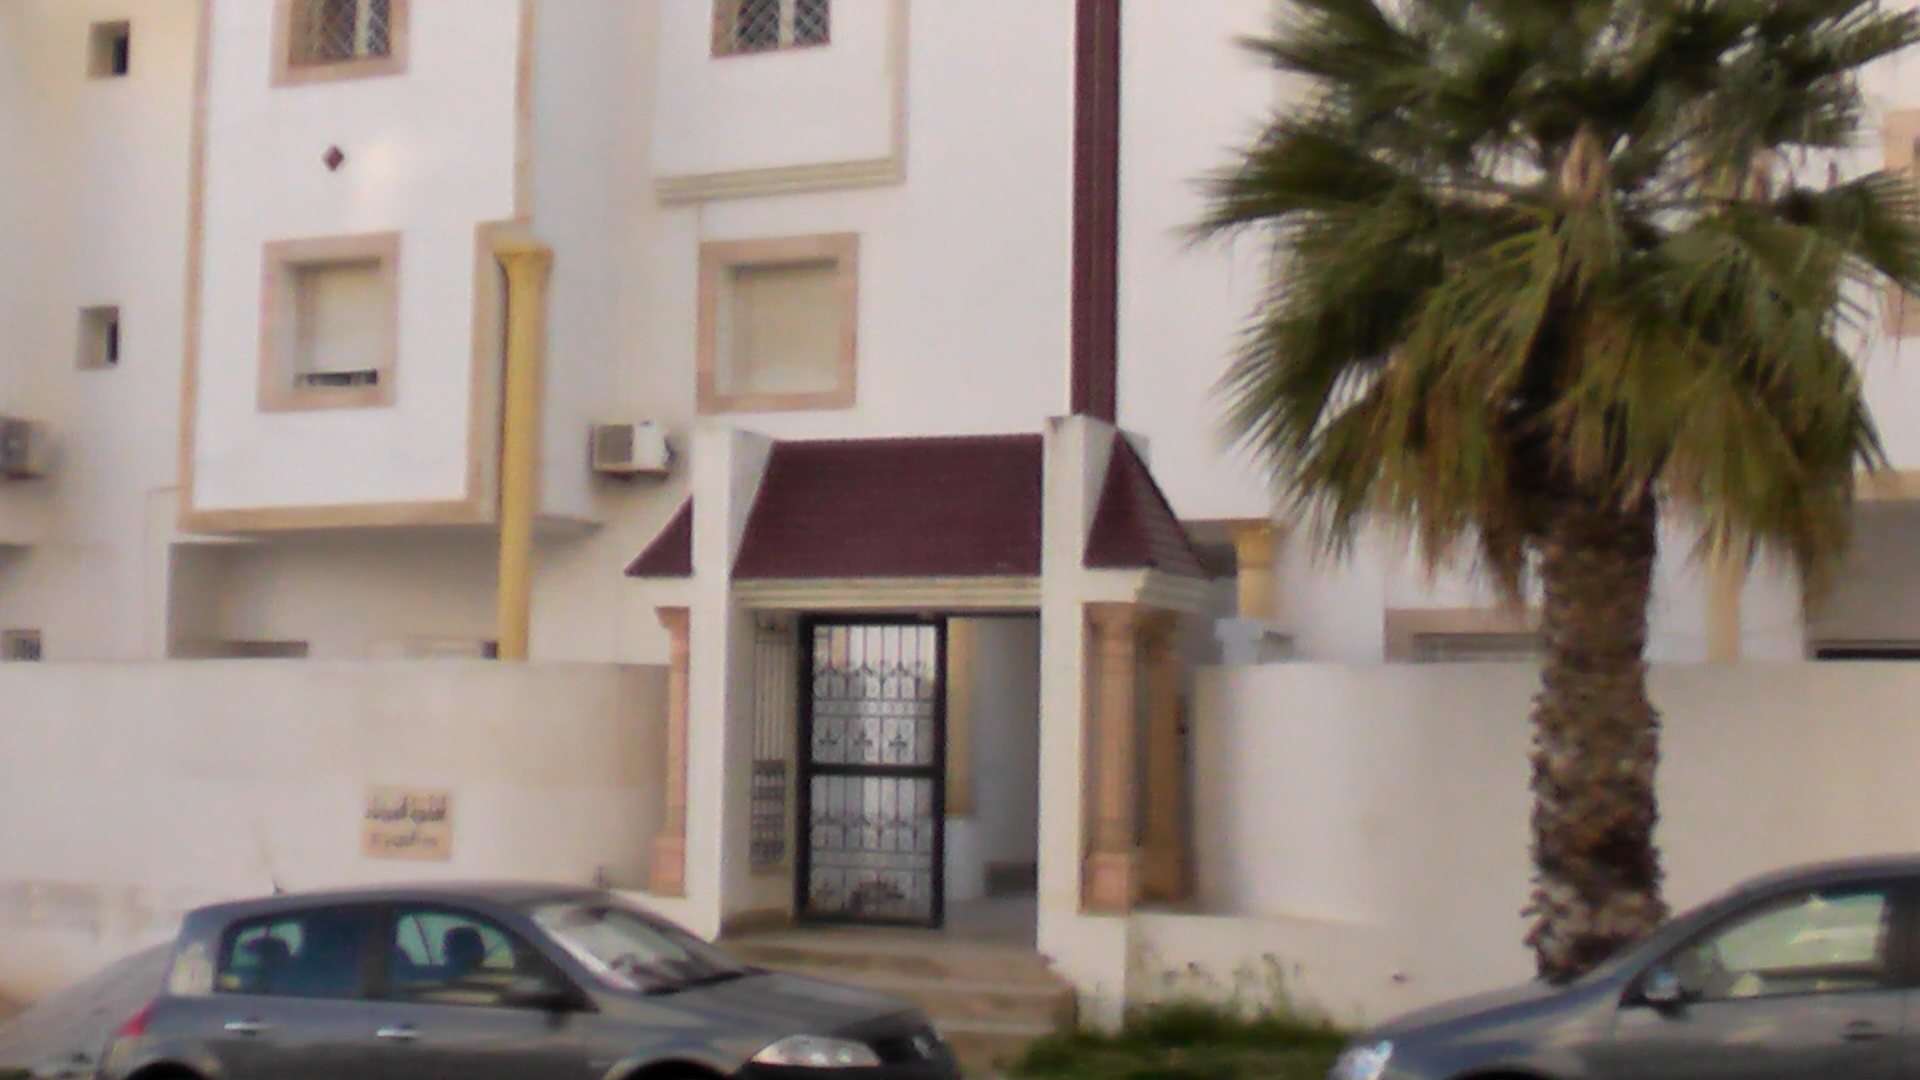 Ariana tunisie vente achat location appartement terrain for Louer appartement agence